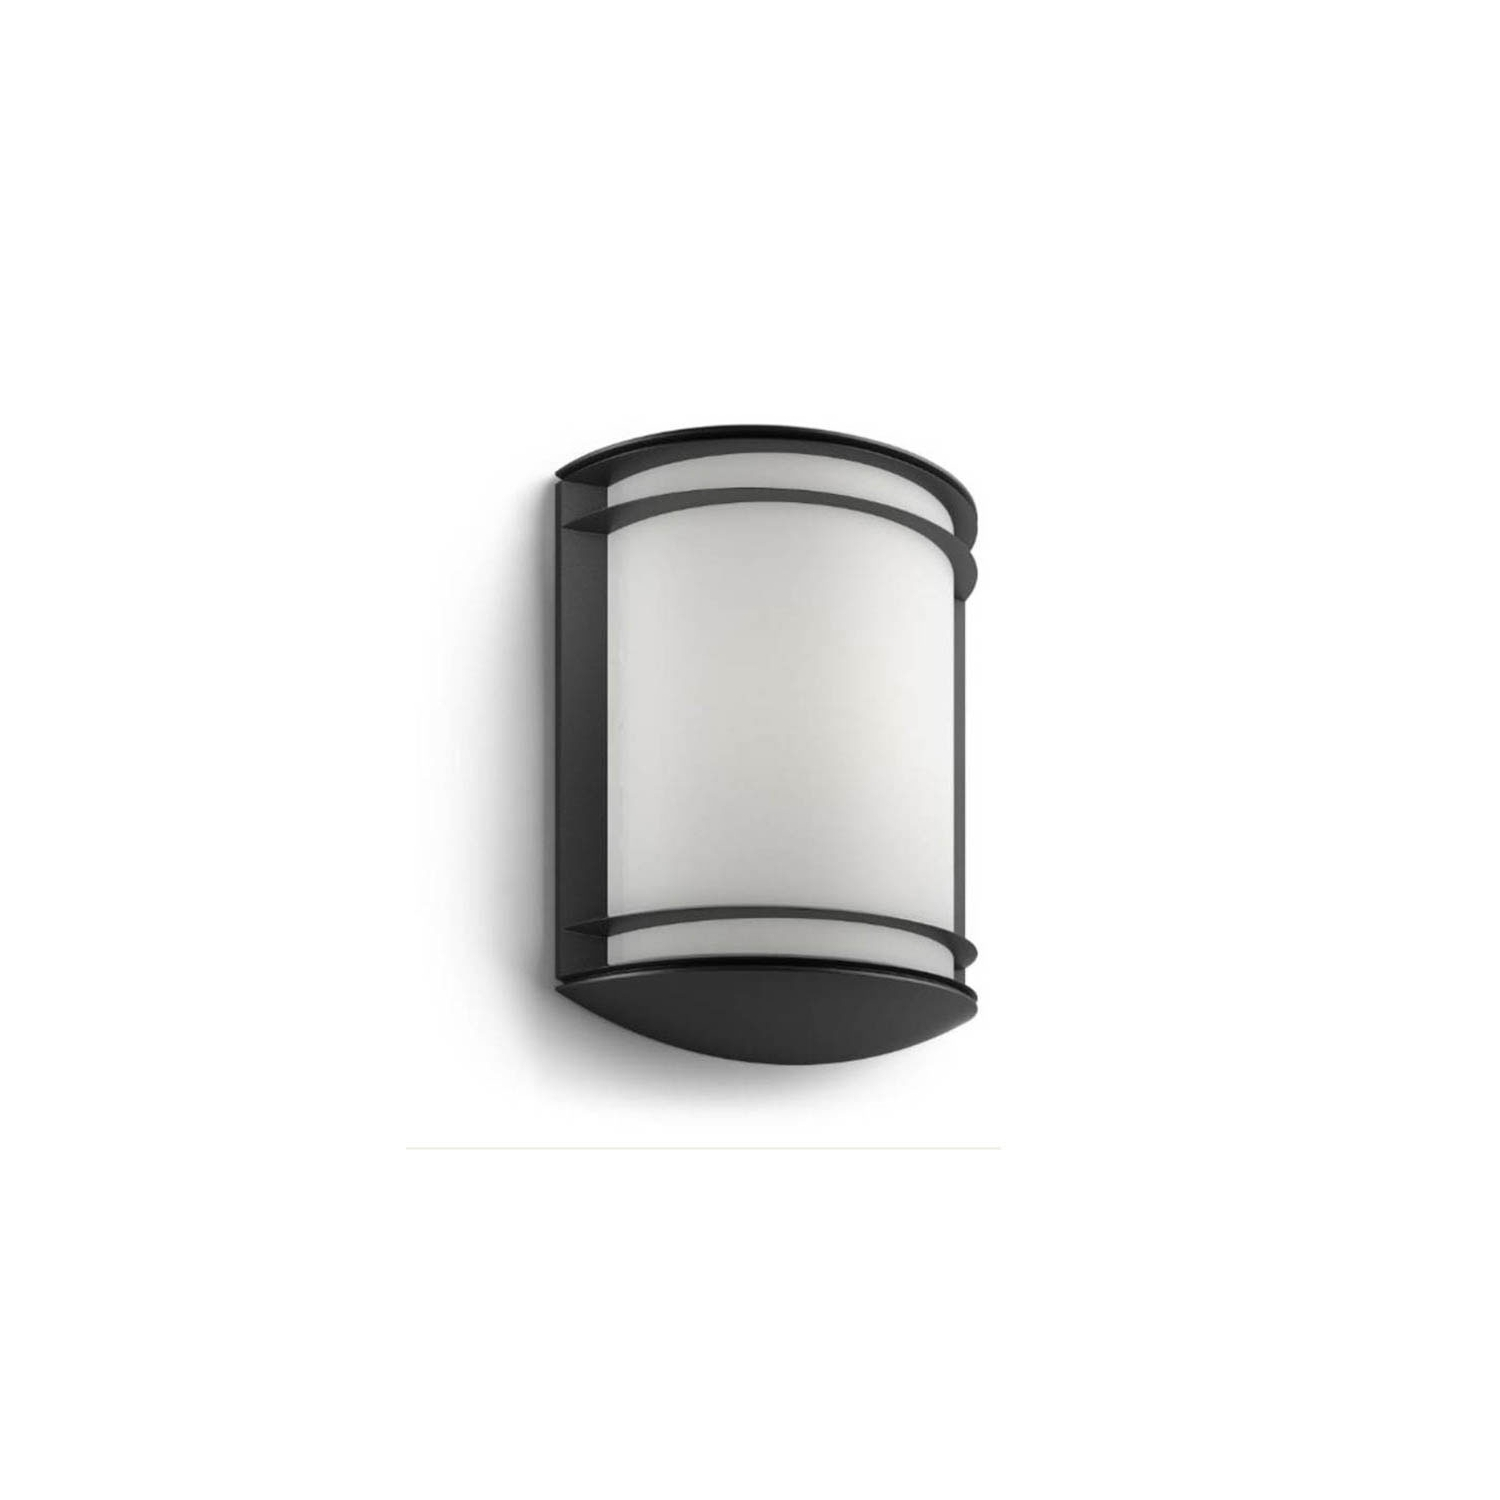 Aplique de pared exterior antelope negro aplique for Apliques de pared exterior led